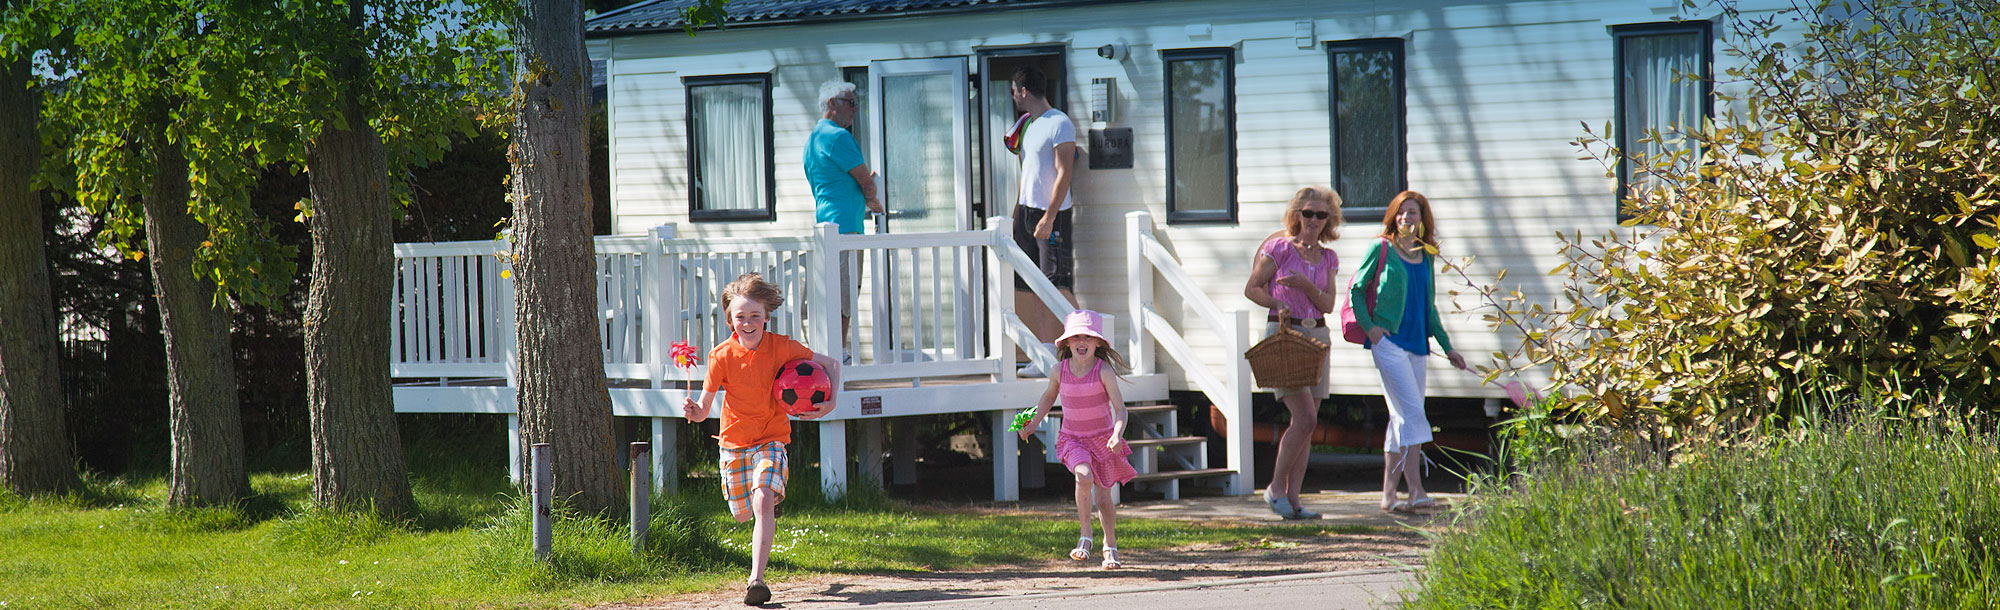 Caravan holidays Essex - family caravans